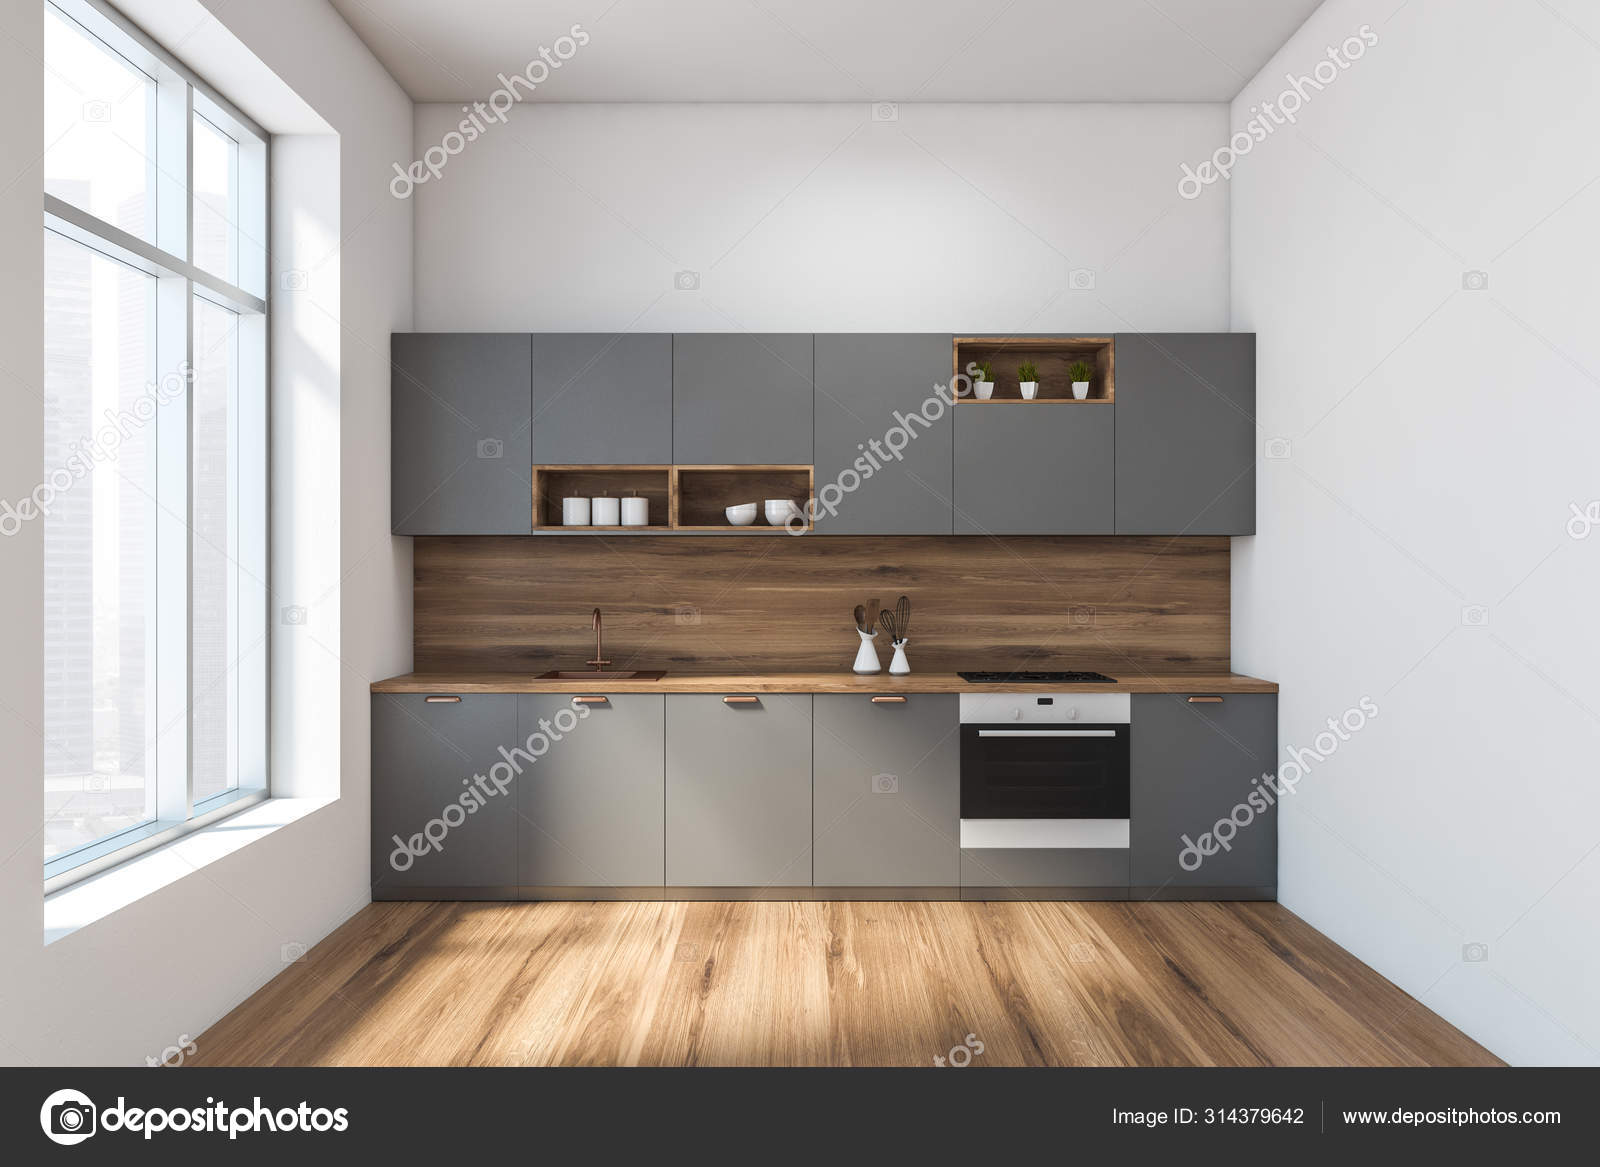 White And Wood Kitchen Gray Countertops Stock Photo Image By C Denisismagilov 314379642